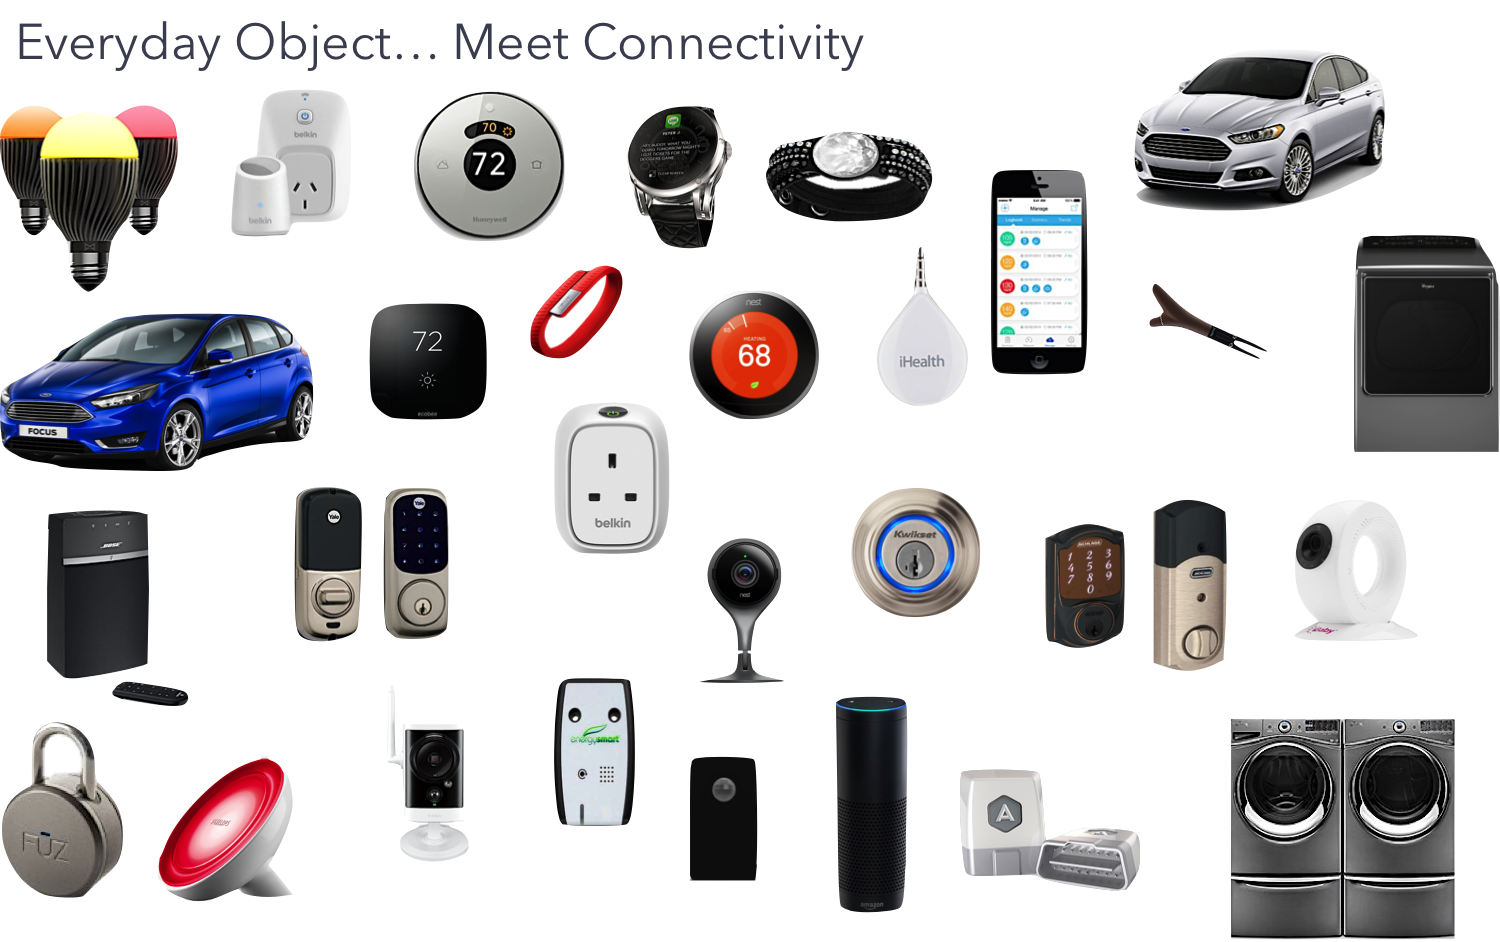 Everyday Object Meet Connectivity 2